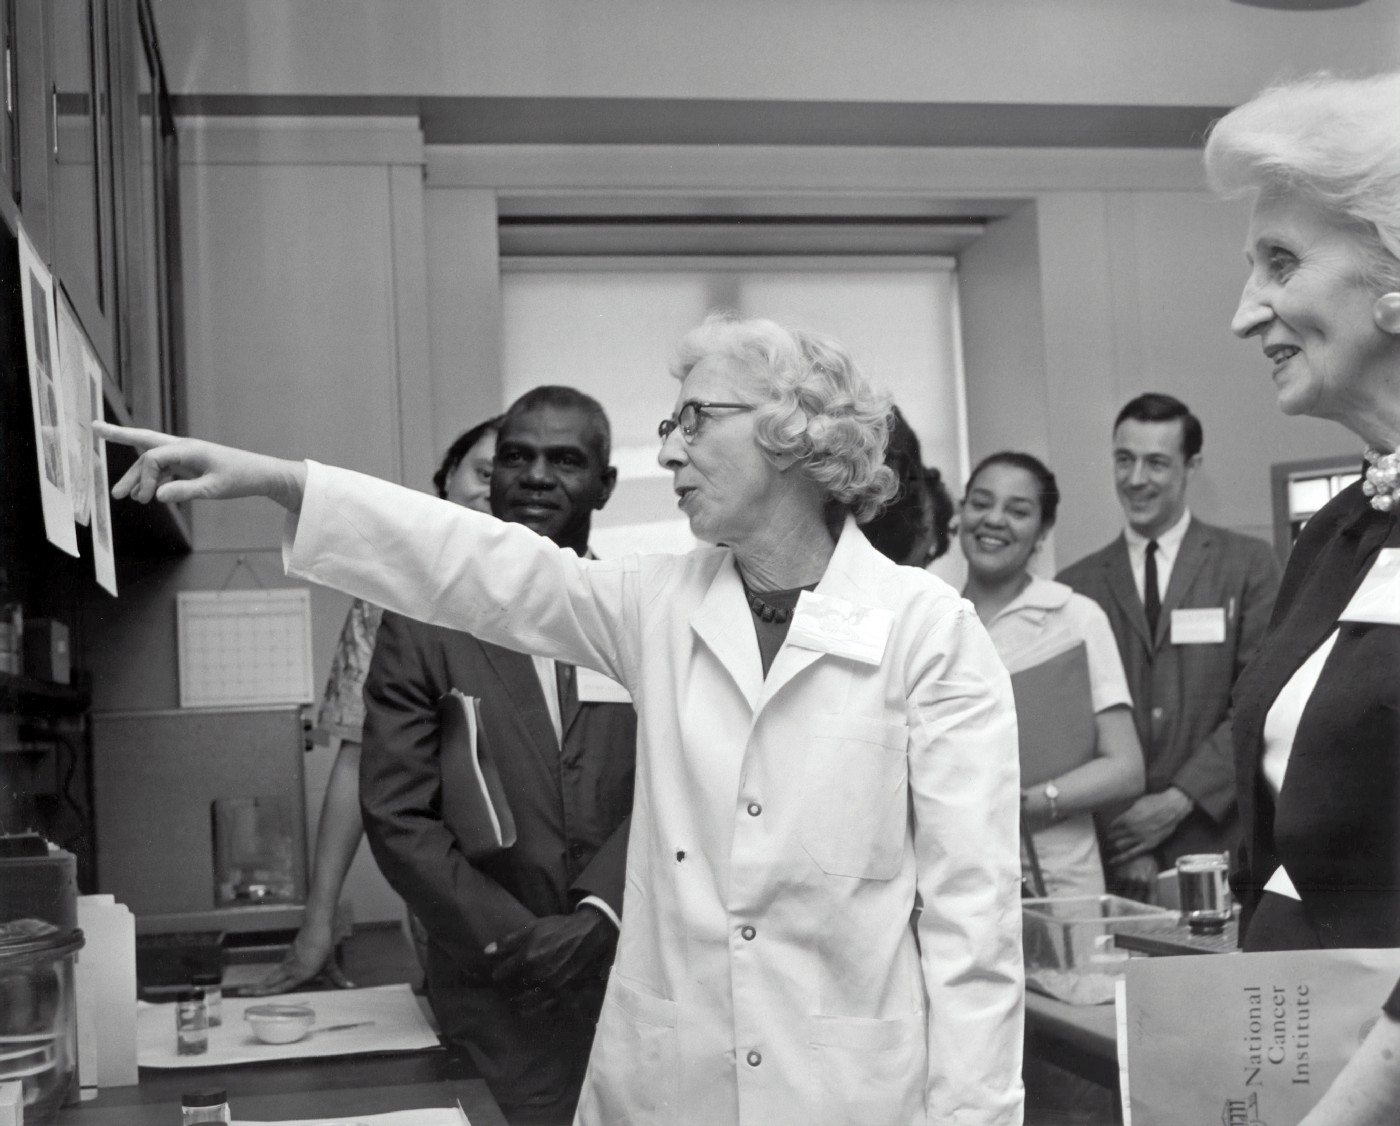 Picture of medical professionals analyzing imaging, with one woman in a white coat pointing to something in the image and showing the others, with a smile on her face and all the other's listening or learning from her.